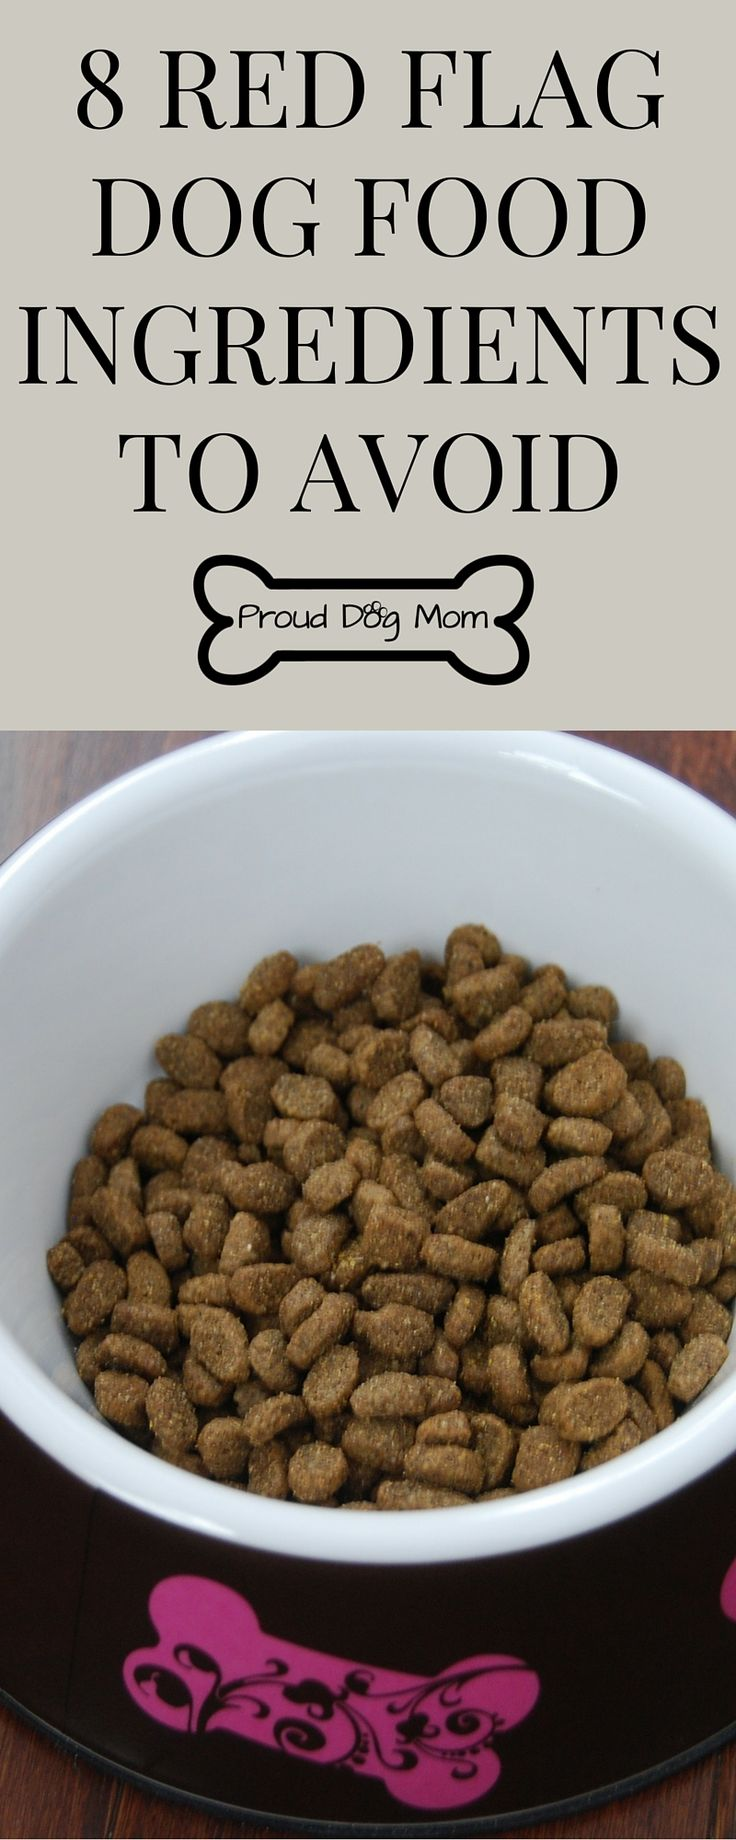 Pet Parents Beware: 8 Red Flag Dog Food Ingredients To Avoid | Dog Health Tips |  #dogysmag #dogs #dog #dogys